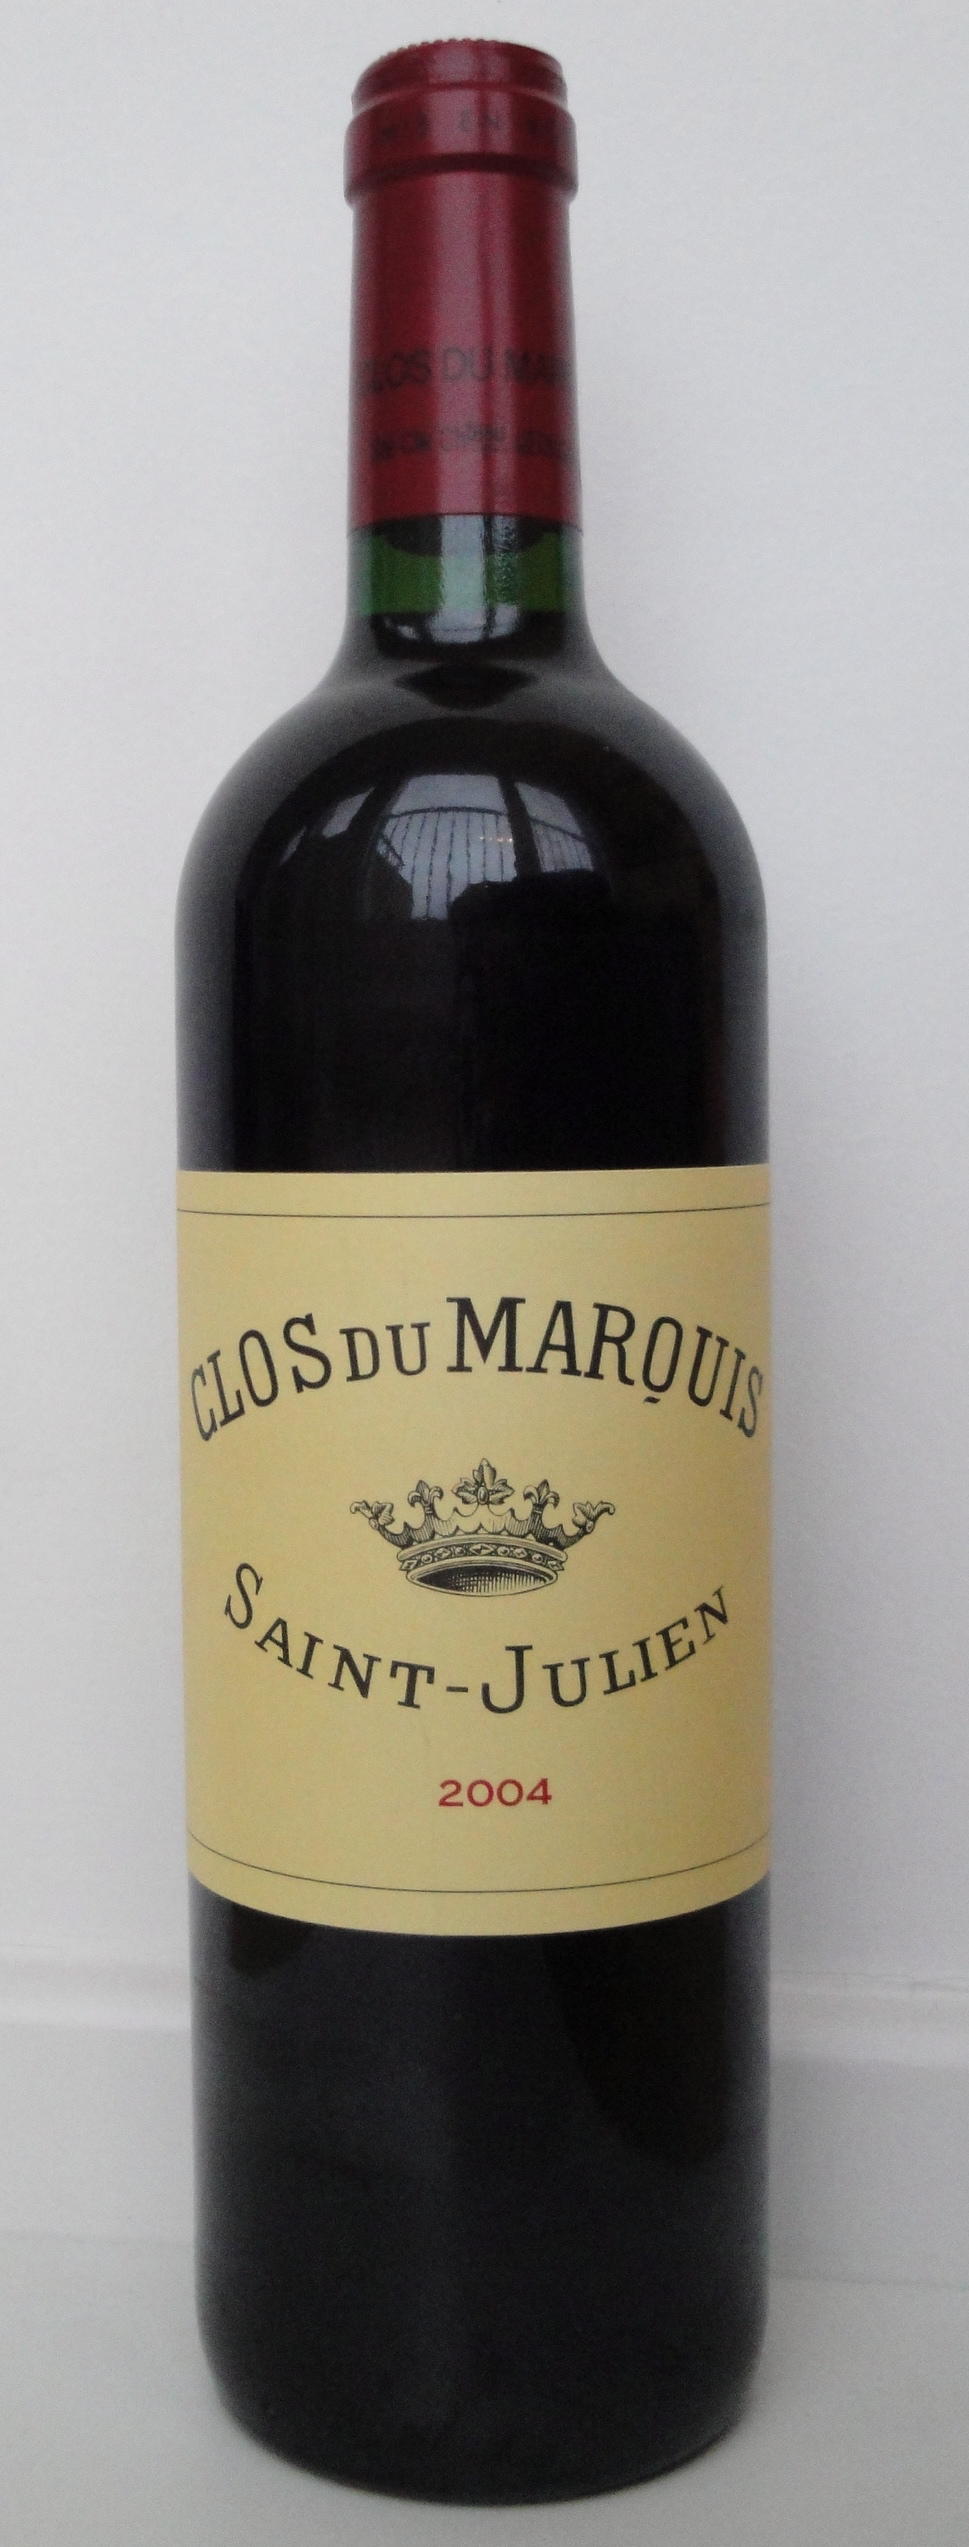 case chataux Introduction of the company the case problems alternatives/ solutions chateau de vallois location: bordeaux region of france category: wine producer products: grand vin du, puin classified as a premier grand chateau must be careful aboutthe needs and structure of the.